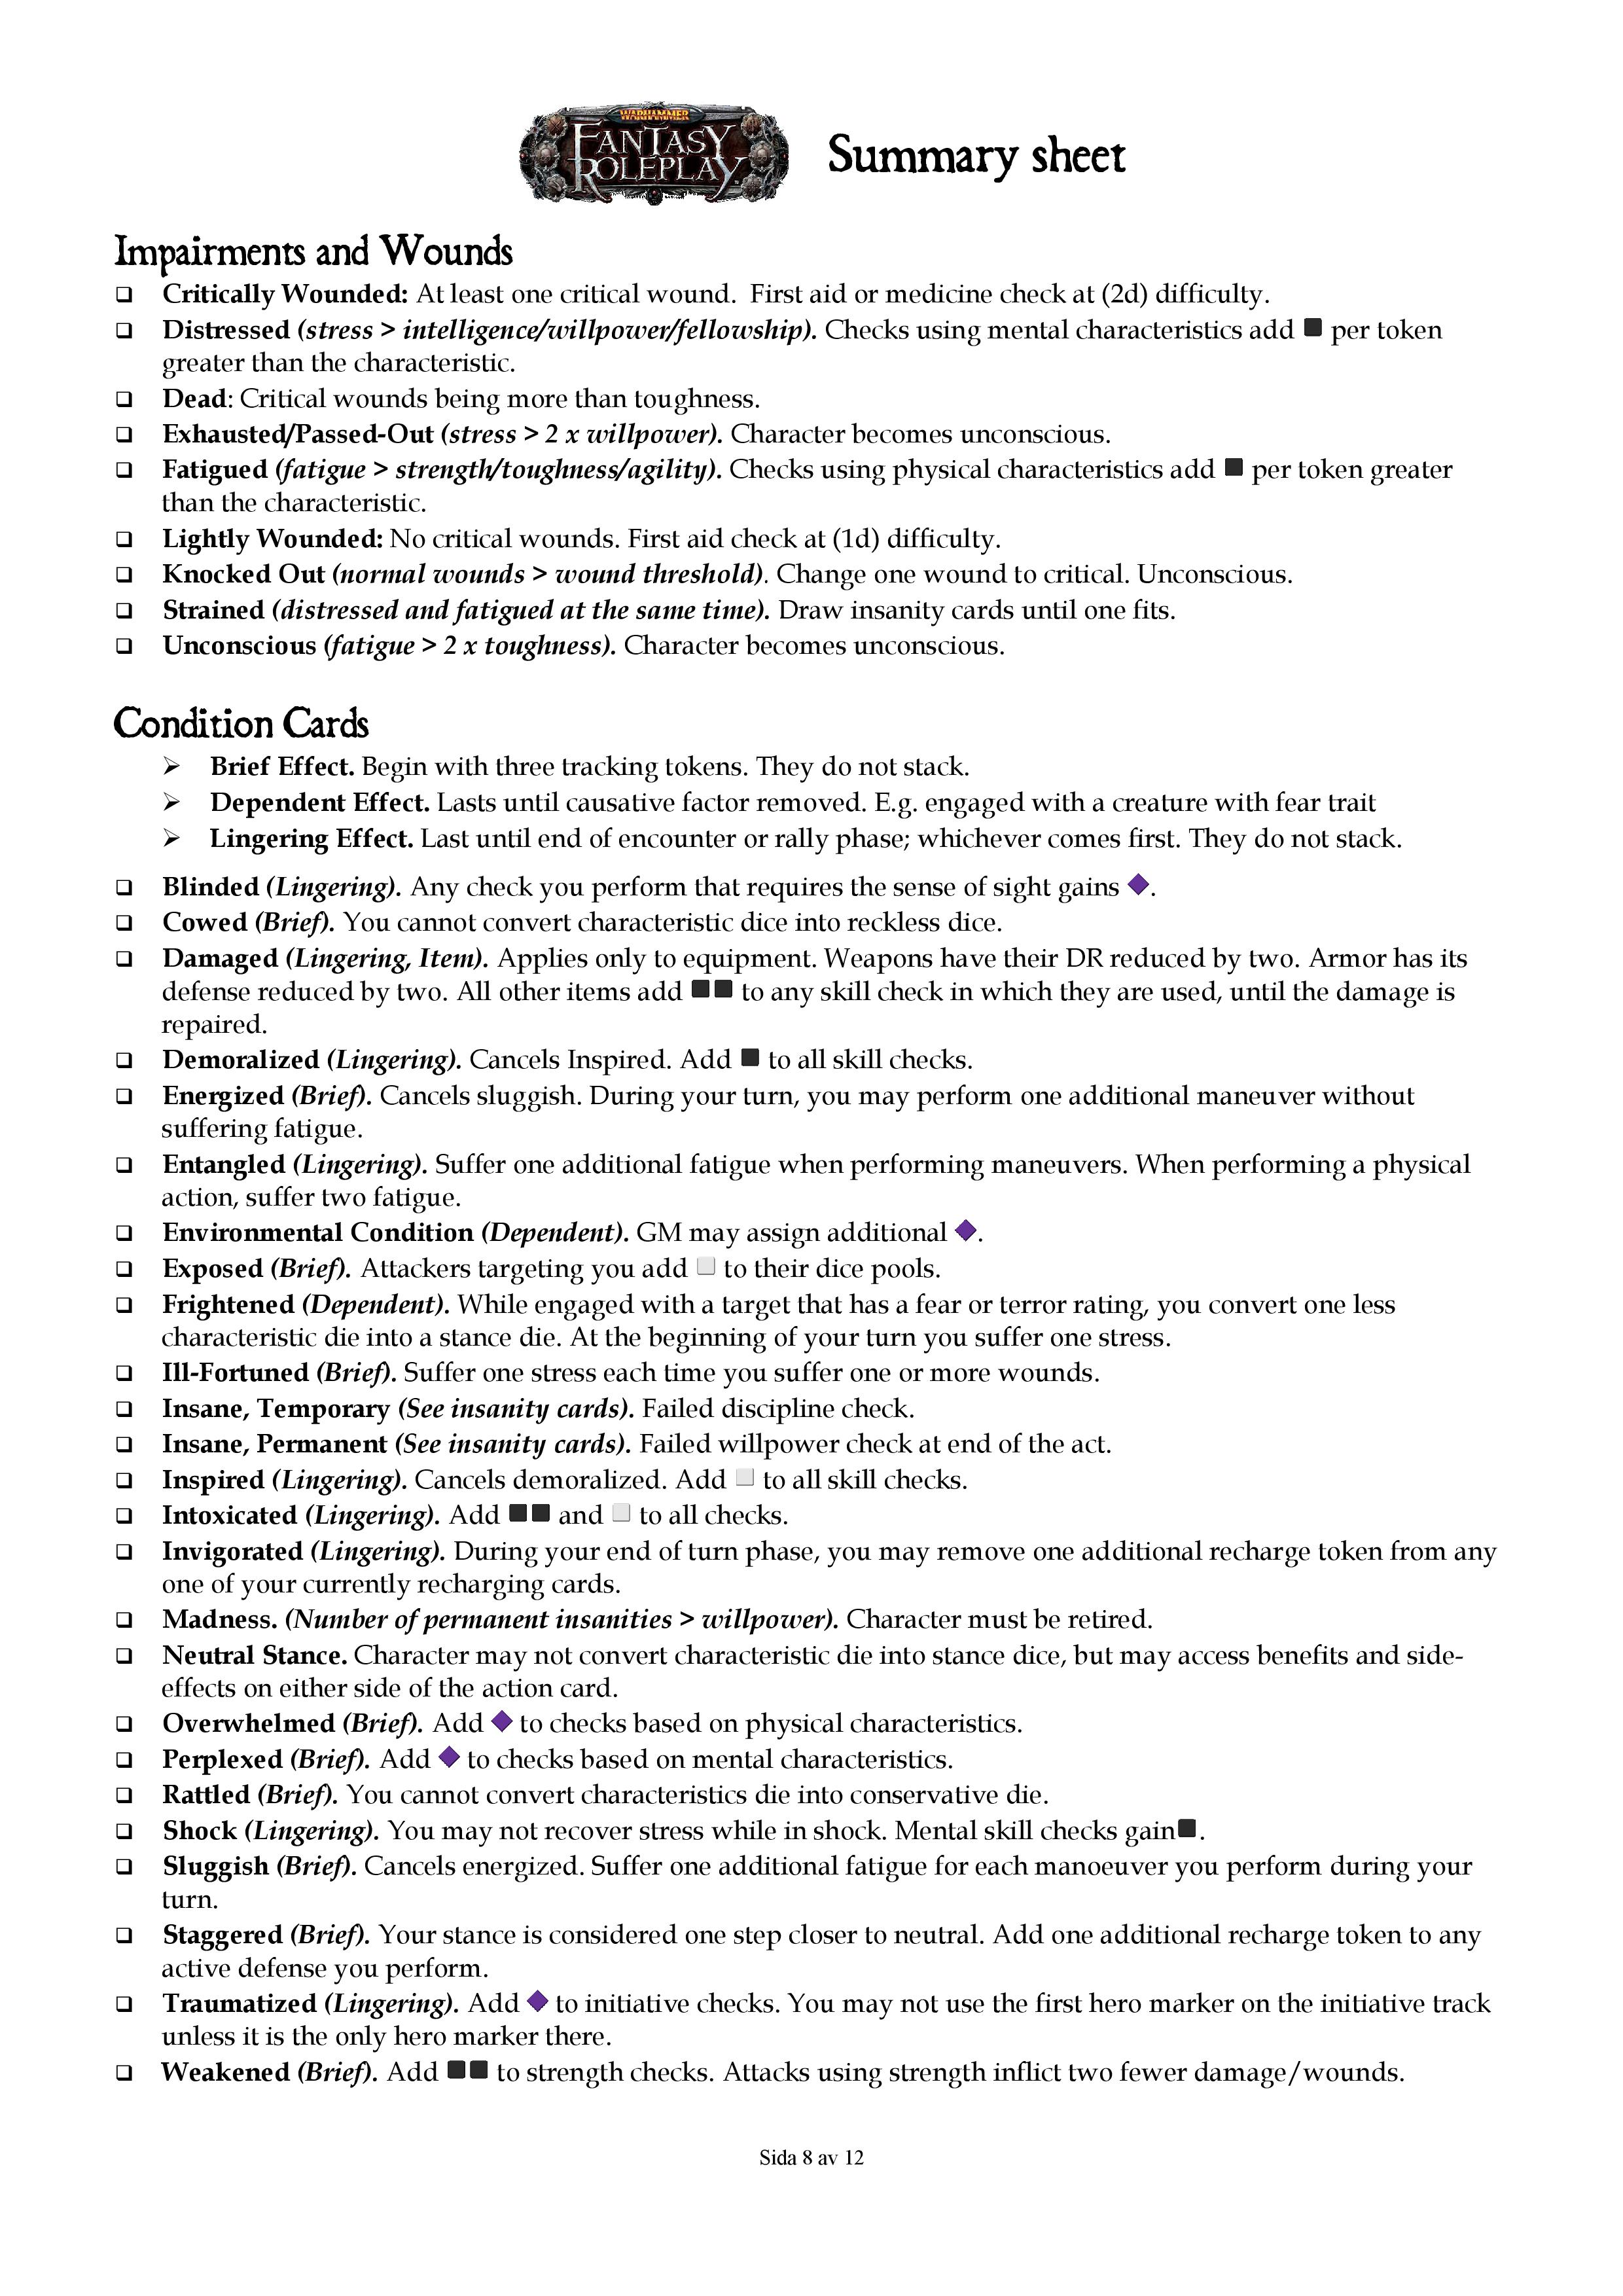 WFRP_3ed_Summary_Sheet_-_Players-page-008.jpg